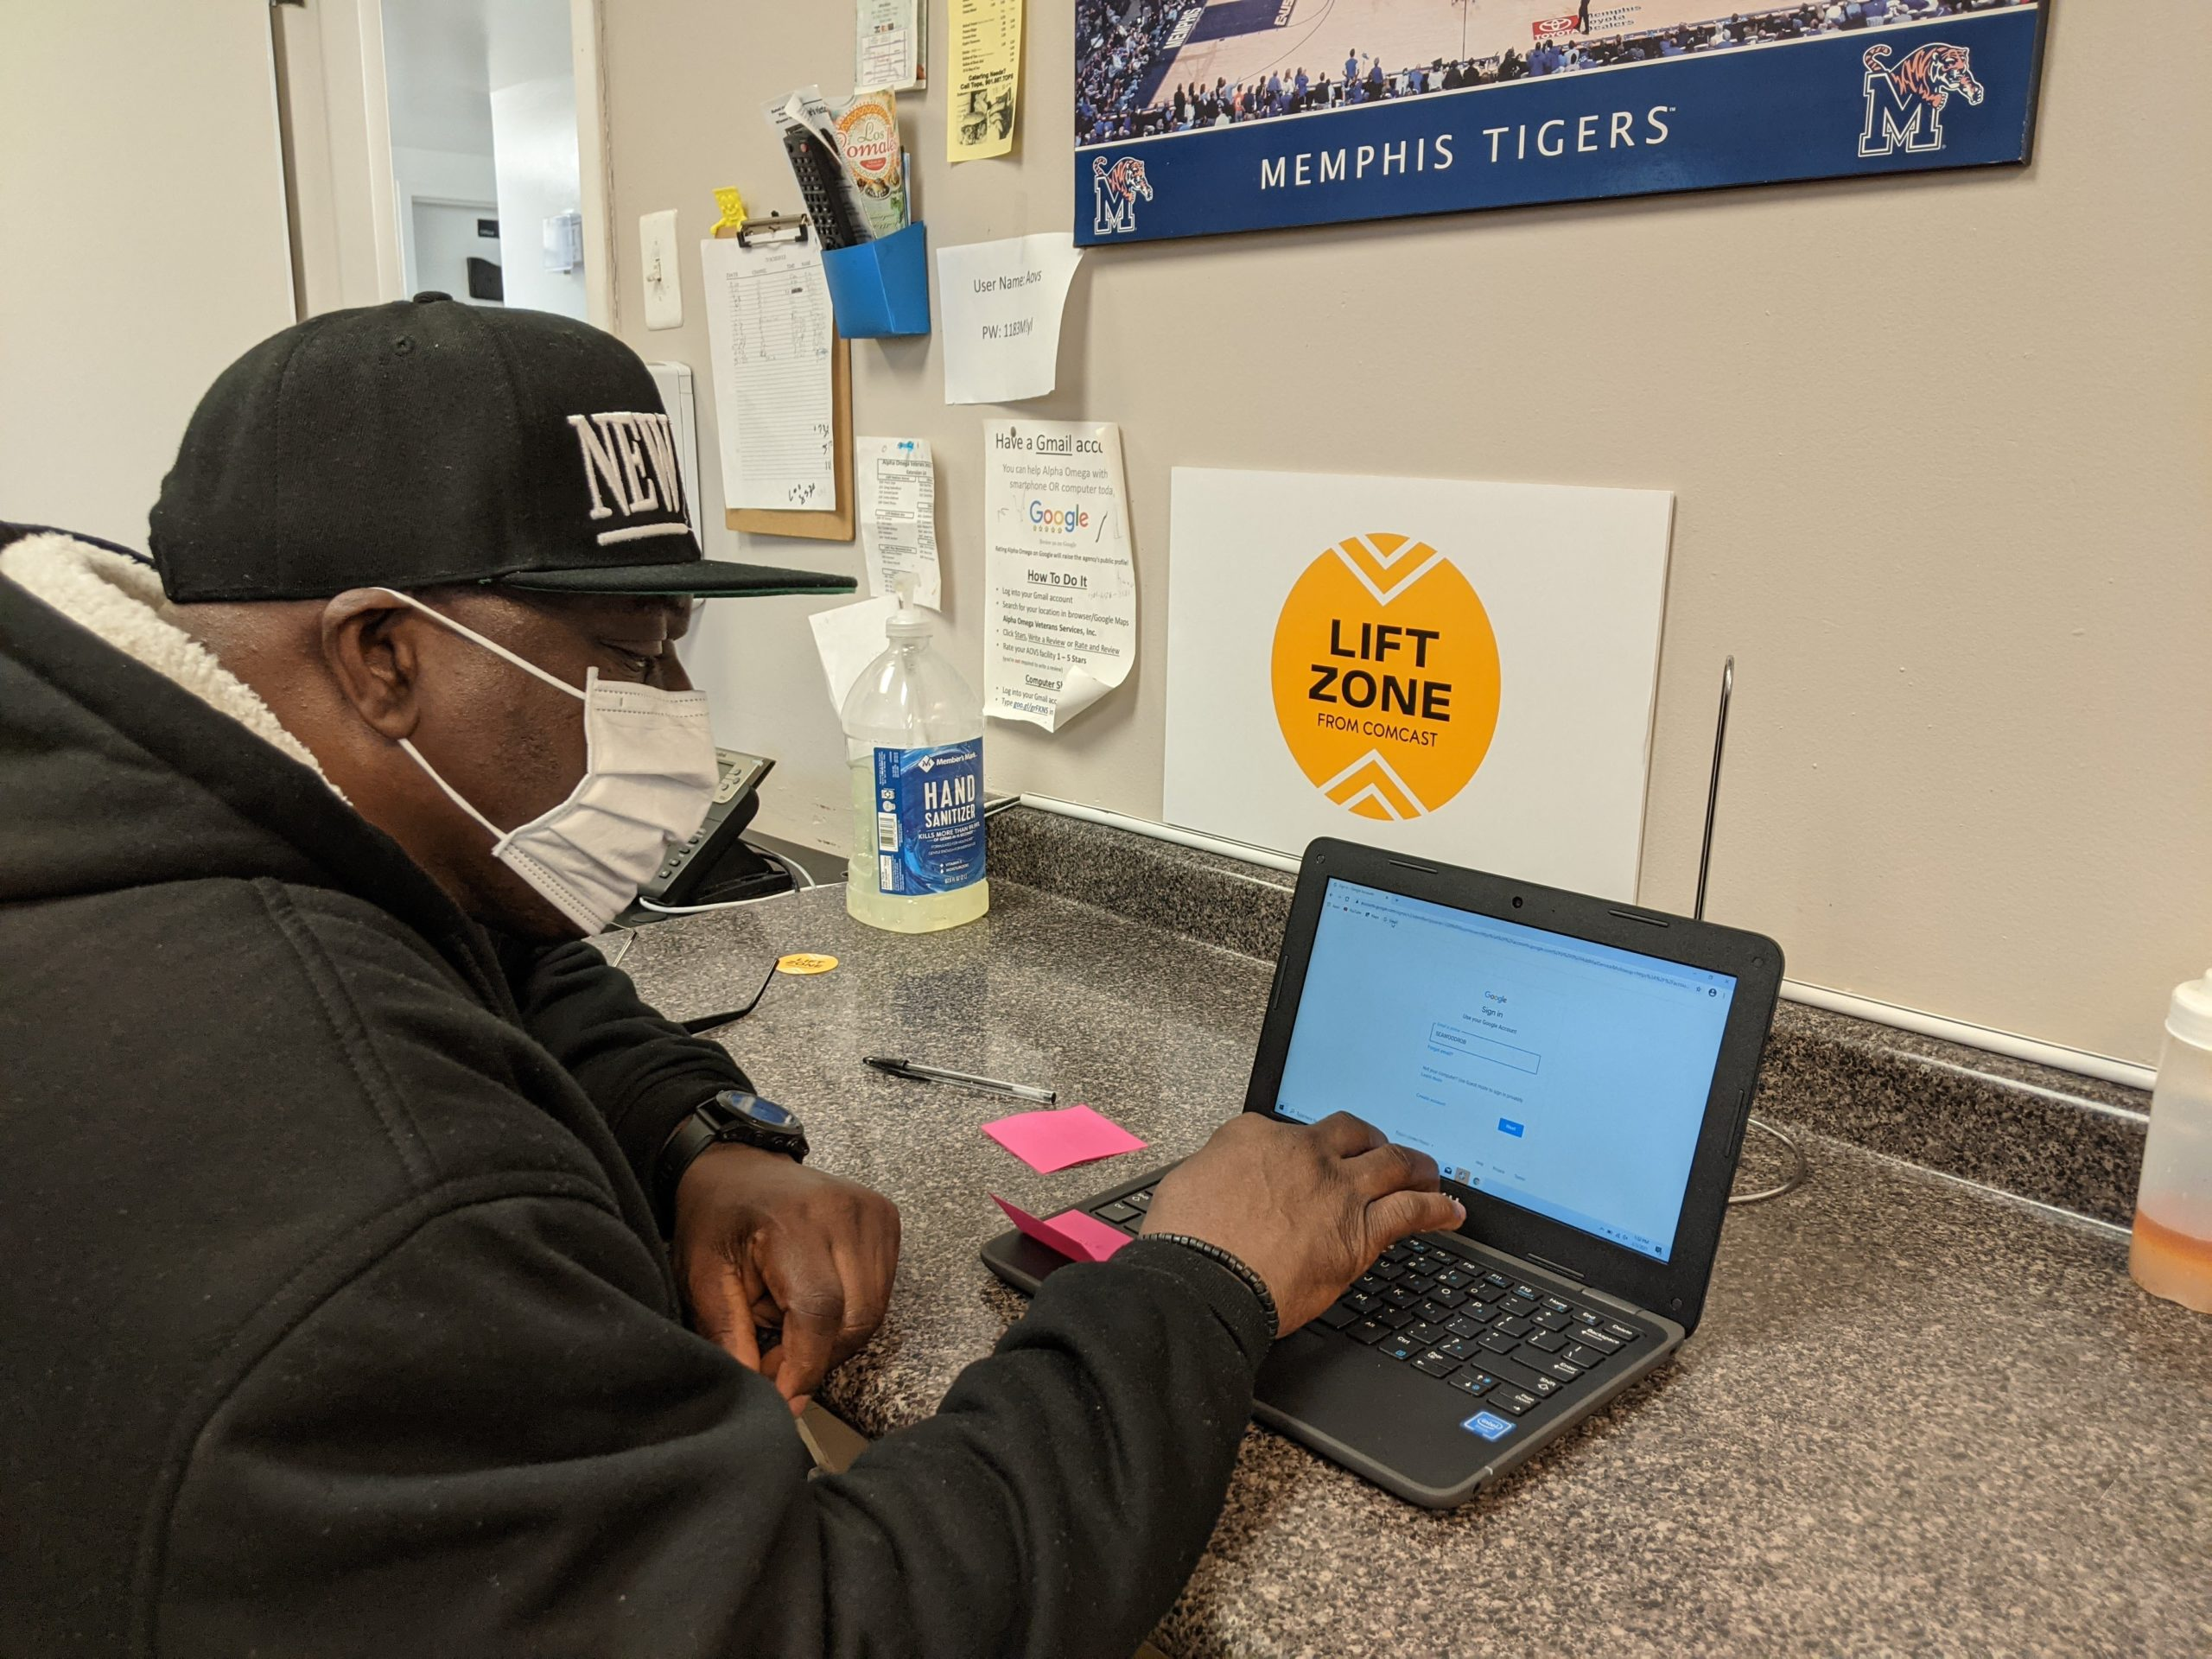 """Comcast Joins Community Organizations to Launch WiFi Connected """"Lift Zones"""" in Memphis Neighborhoods"""